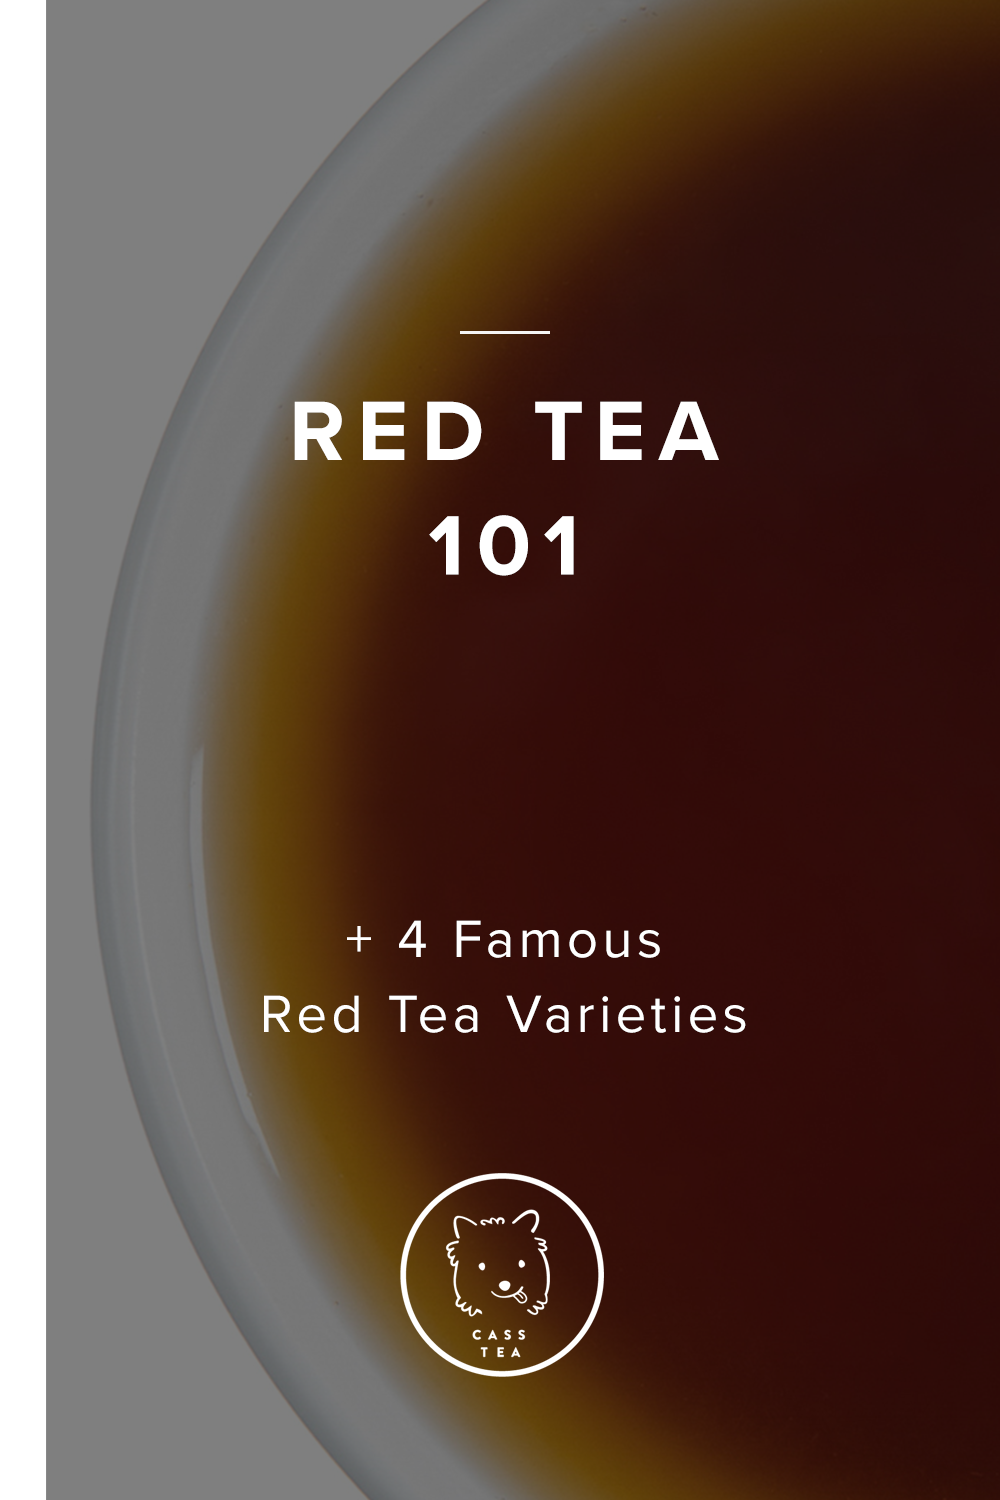 """Red Tea 101 will bring you up to speed on the basics of red tea. Red Tea usually goes by the name """"Black Tea"""" for English speakers - which can be confusing as Black Tea is a separate category of Chinese tea. Red tea is the most popular tea in the west, and is also full oxidized, unlike green tea which has no oxidization. Let's learn about what makes red tea so irresistible."""